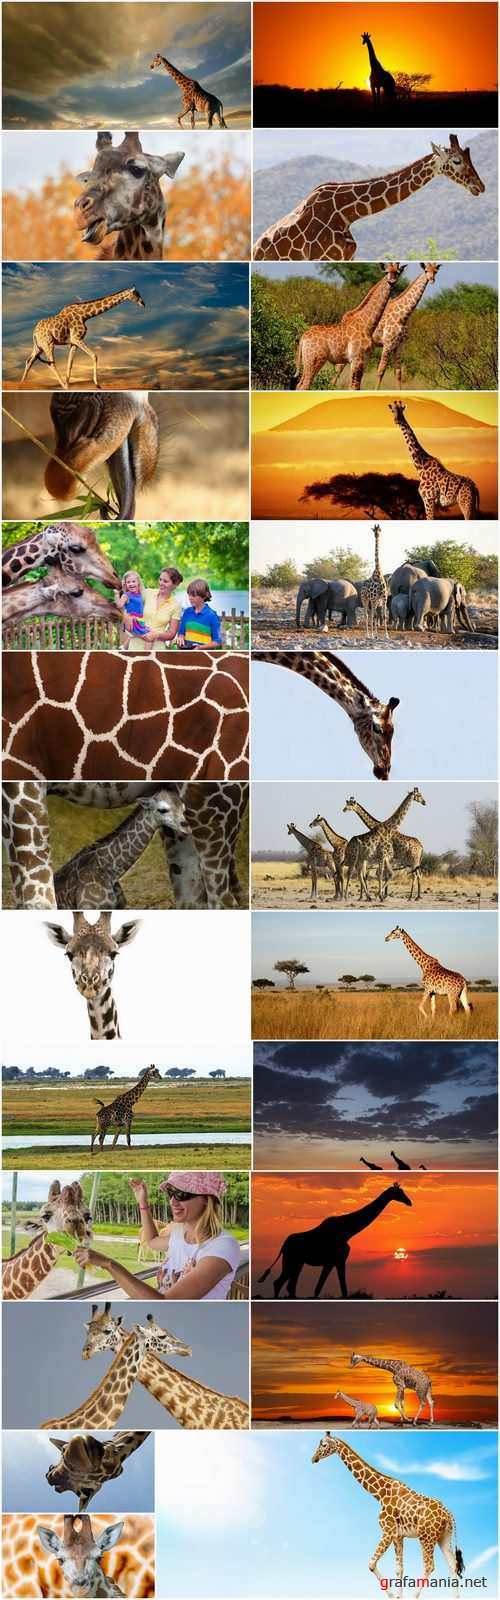 Giraffe long neck wildlife landscape 25 HQ Jpeg